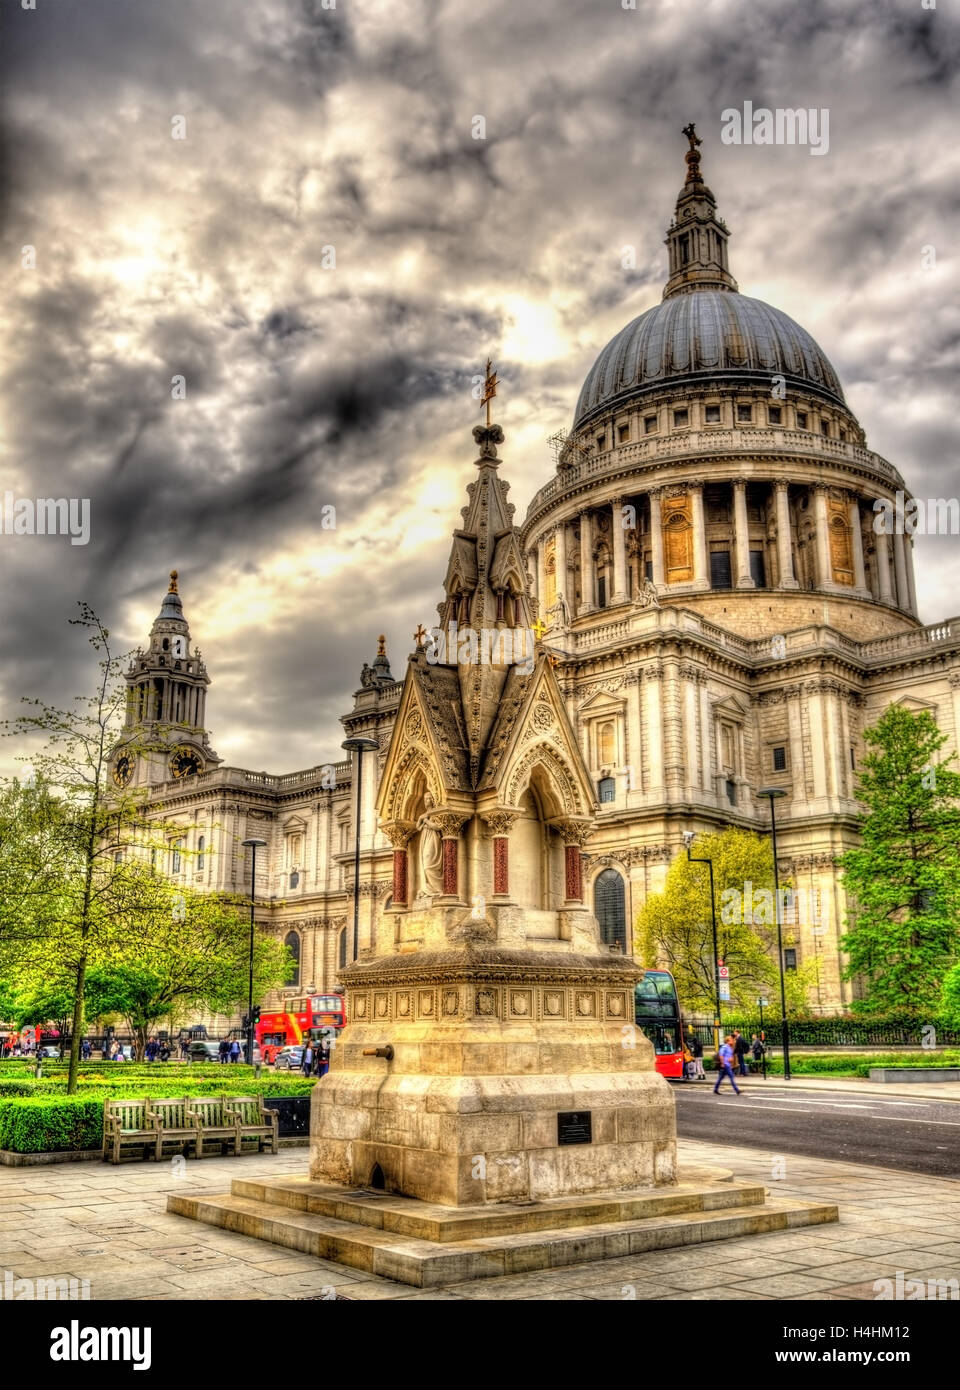 Blick auf St. Pauls Cathedral in London - England Stockfoto